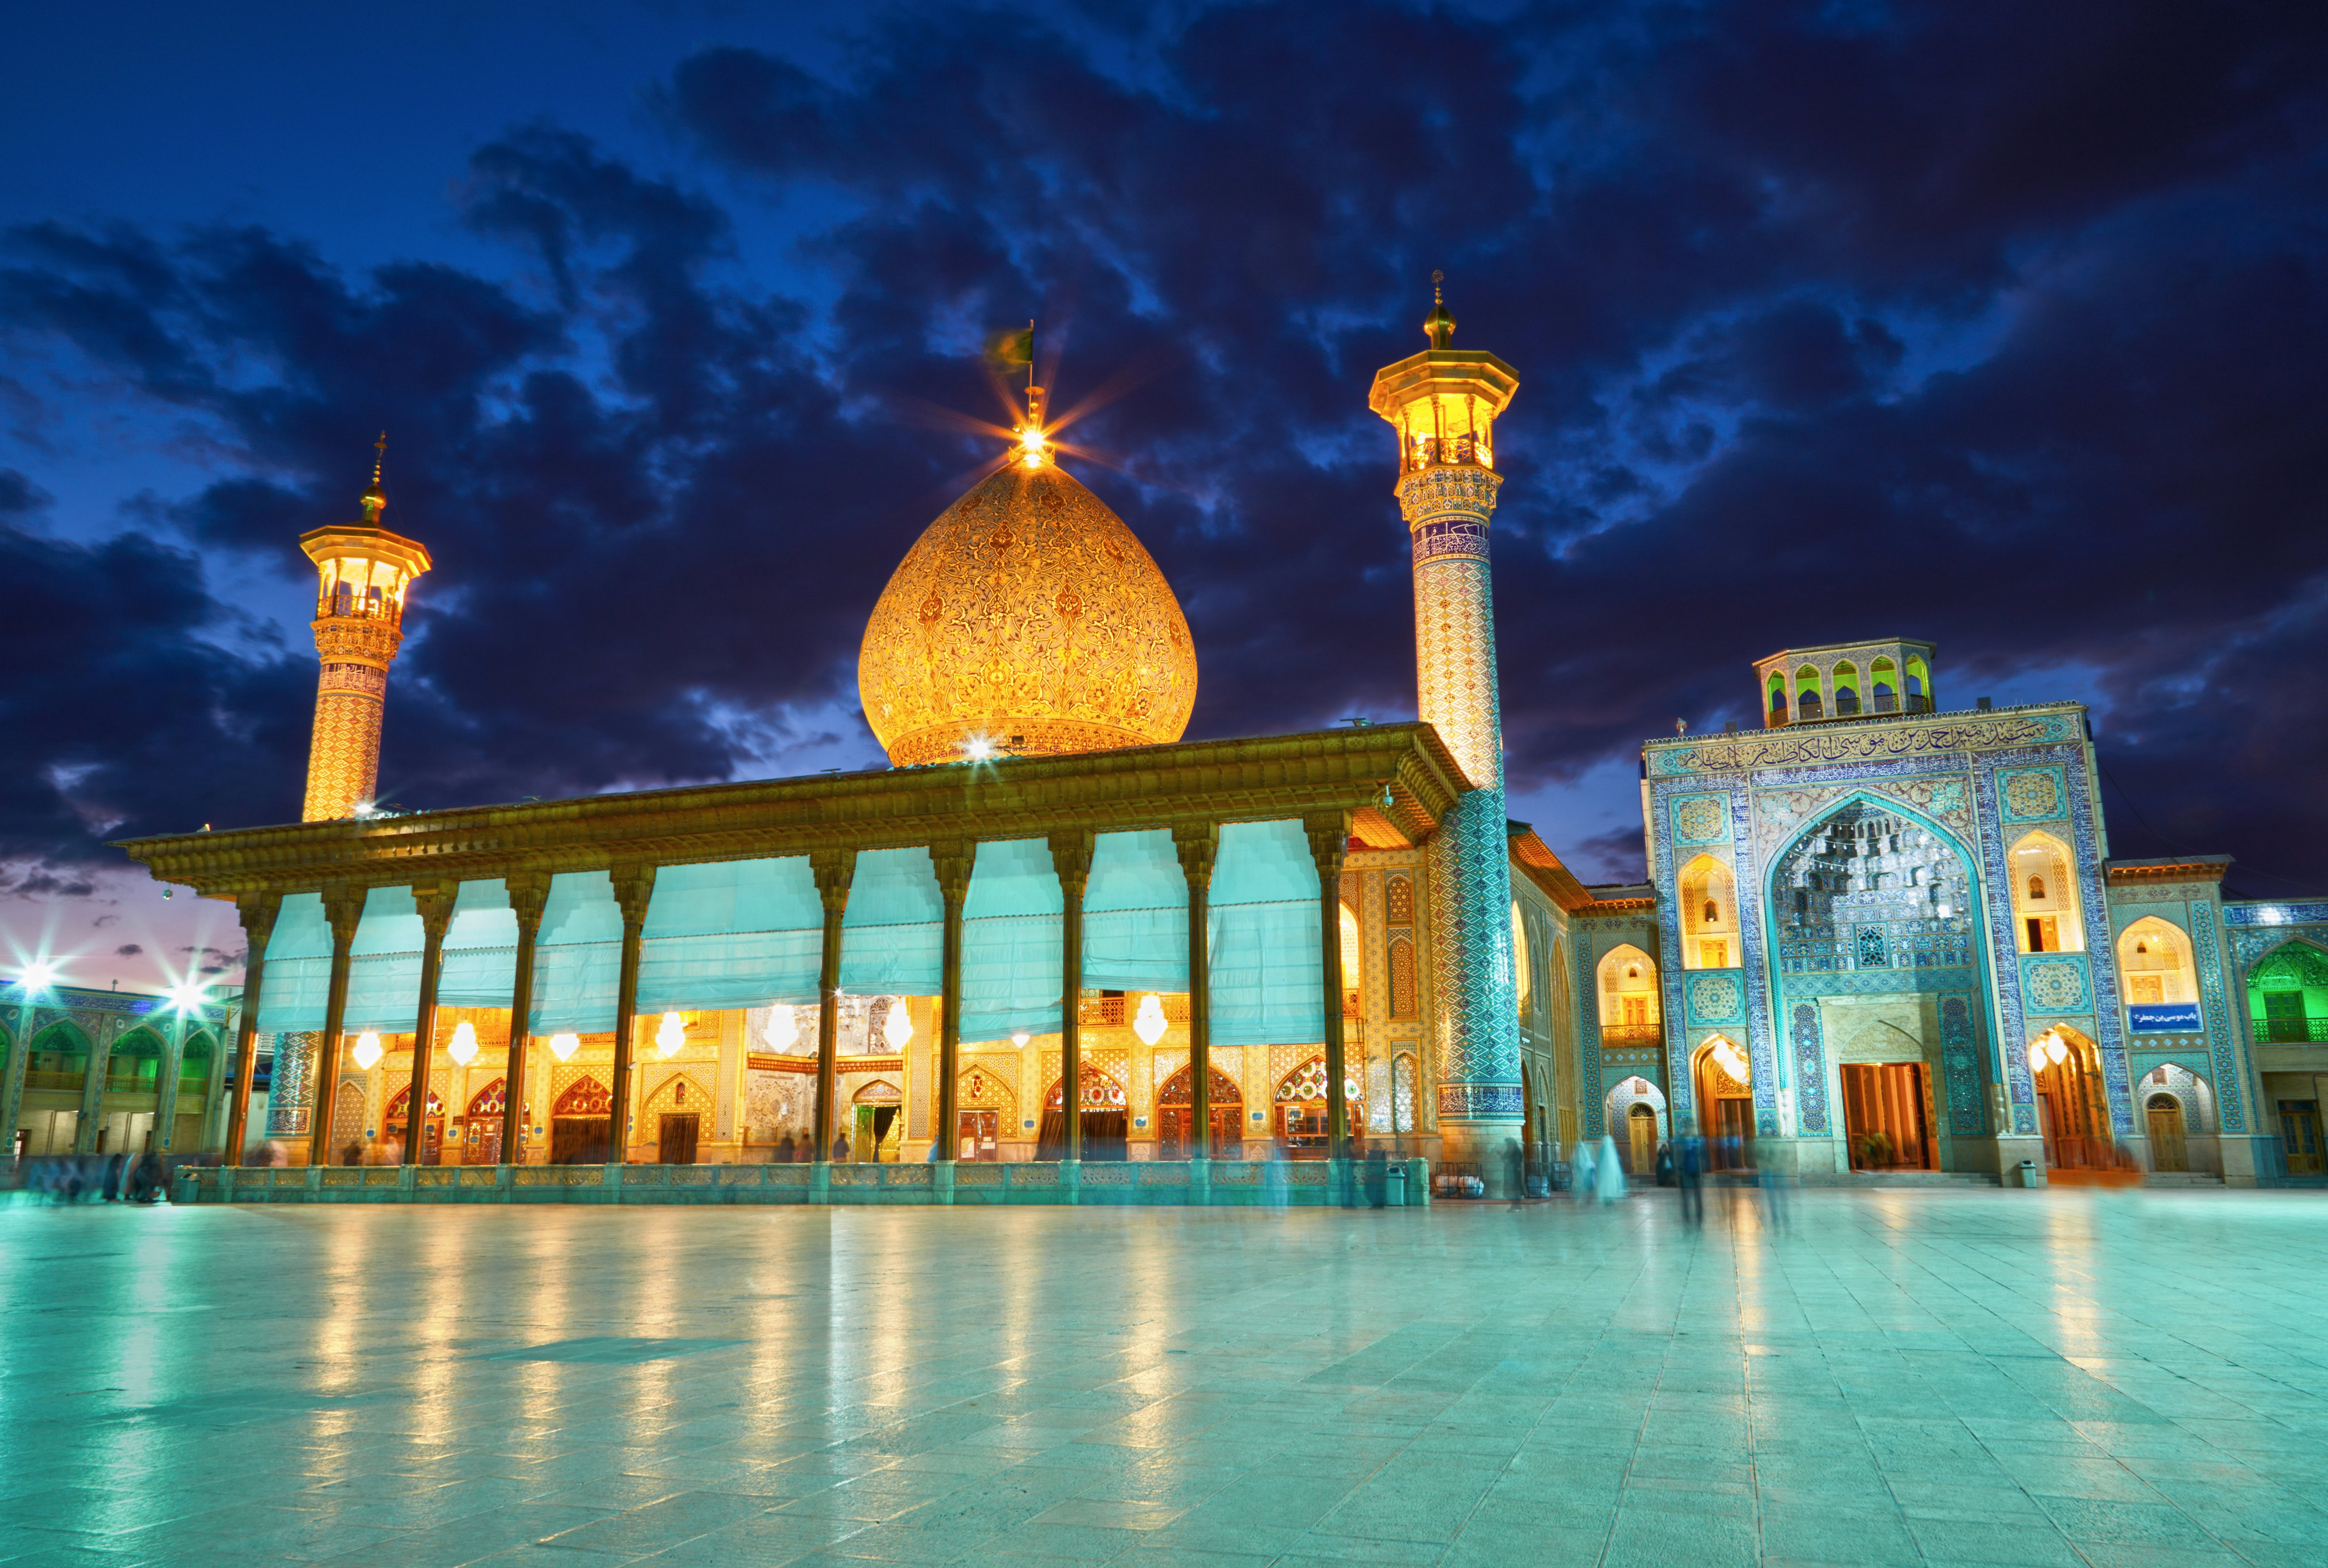 https://www.coindesk.com/localbitcoins-bans-bitcoin-buying-in-iran-in-blow-to-rising-crypto-commerce